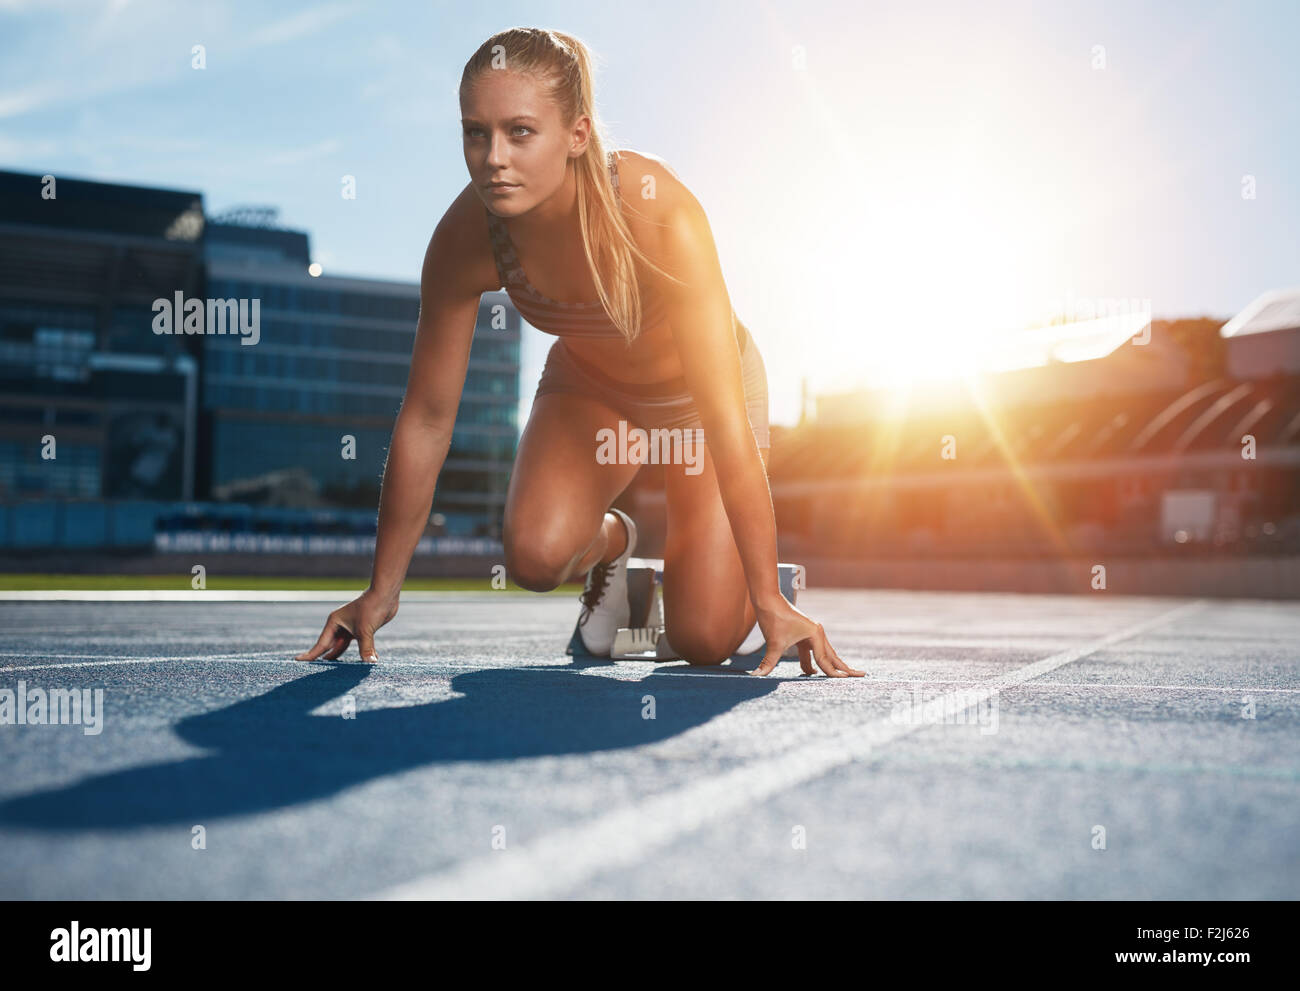 Fit and confident woman in starting position ready for running. Female athlete about to start a sprint looking away. - Stock Image